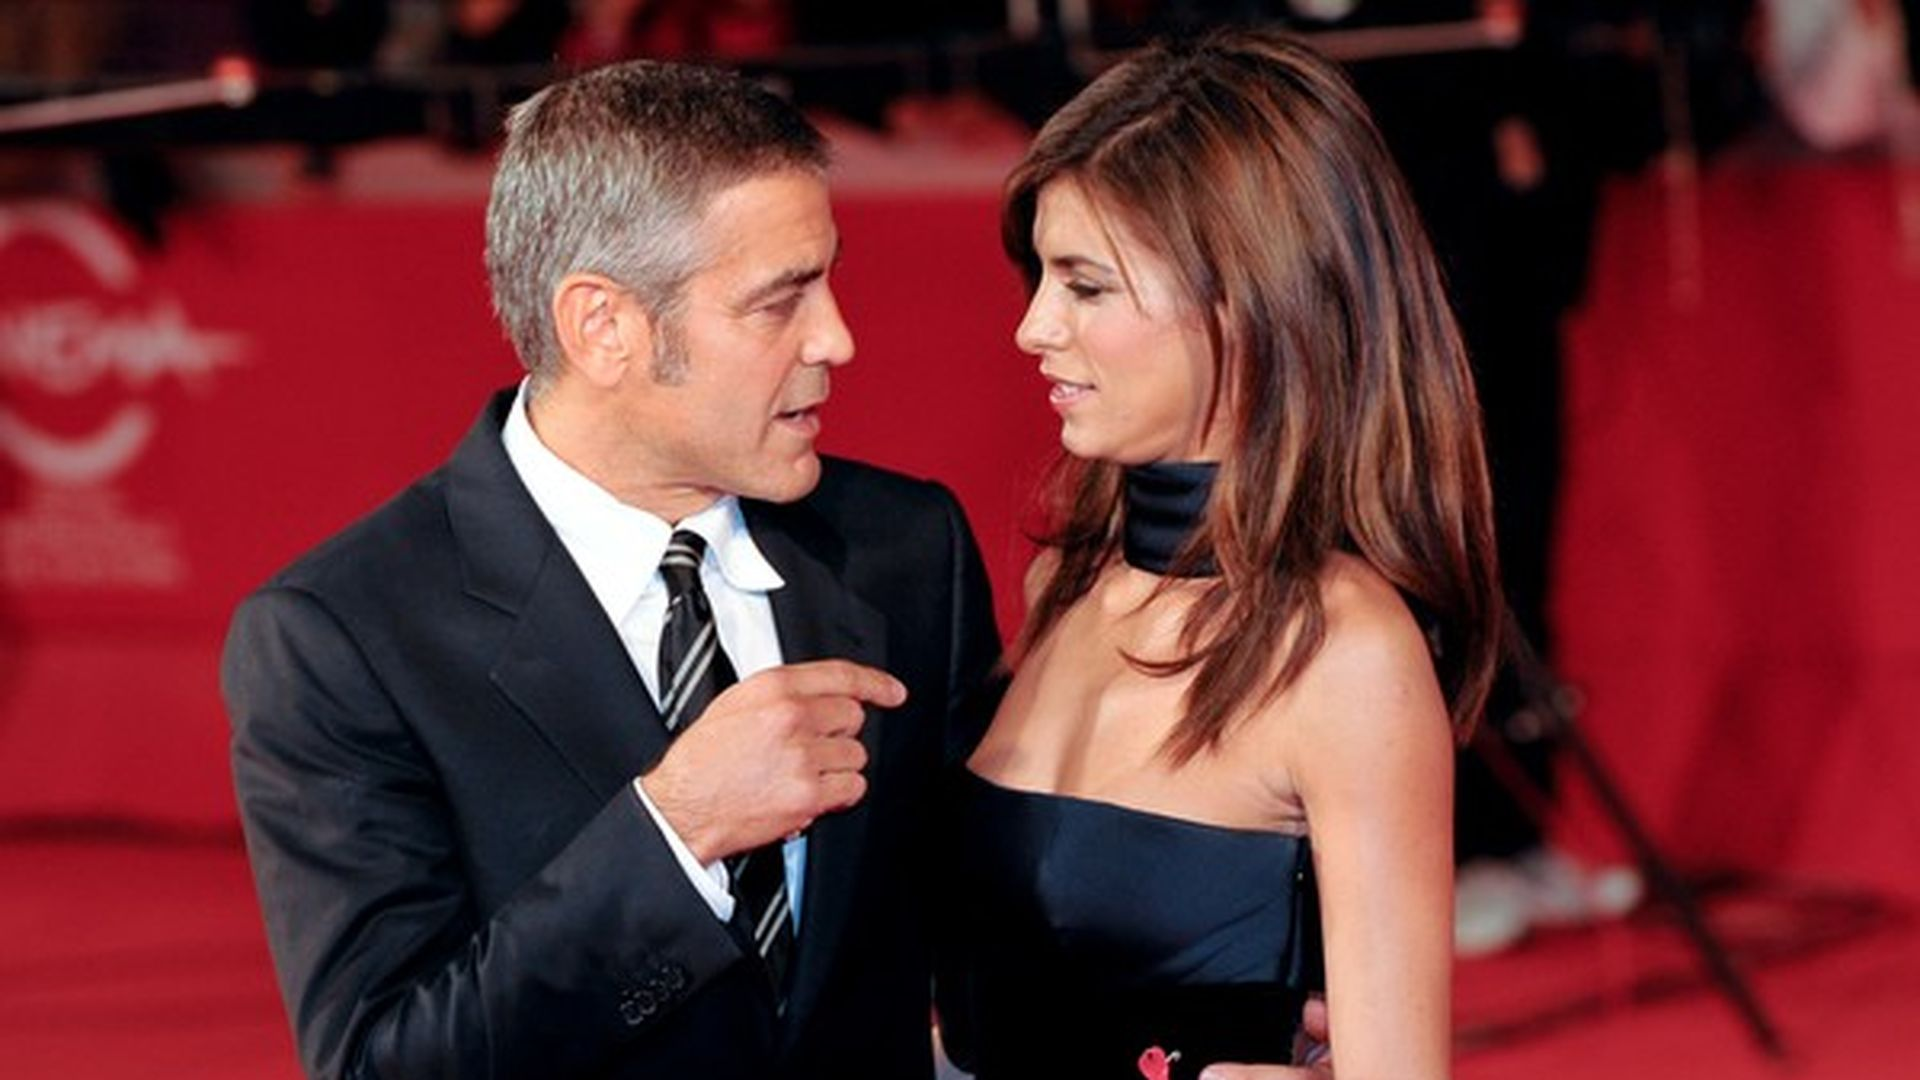 george clooney streitet sich auf dem roten teppich. Black Bedroom Furniture Sets. Home Design Ideas